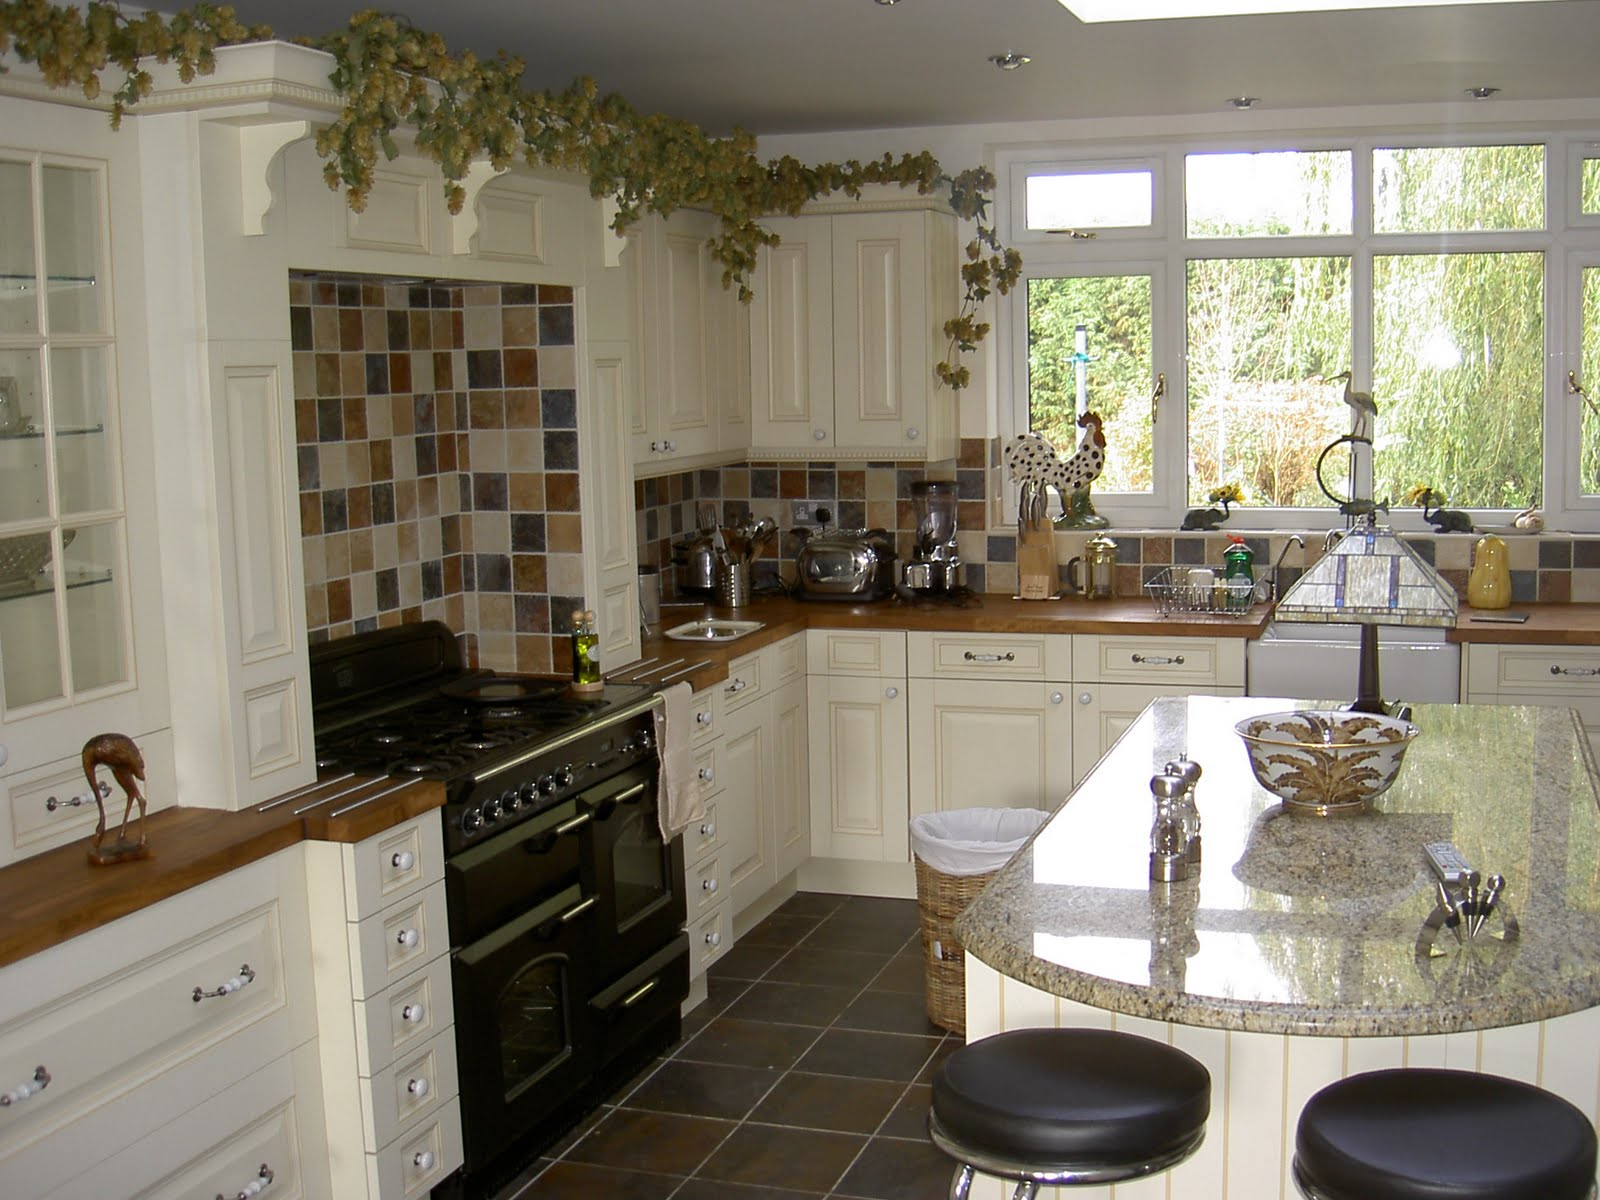 Interior design chatter create a country style kitchen - Country style kitchens ...